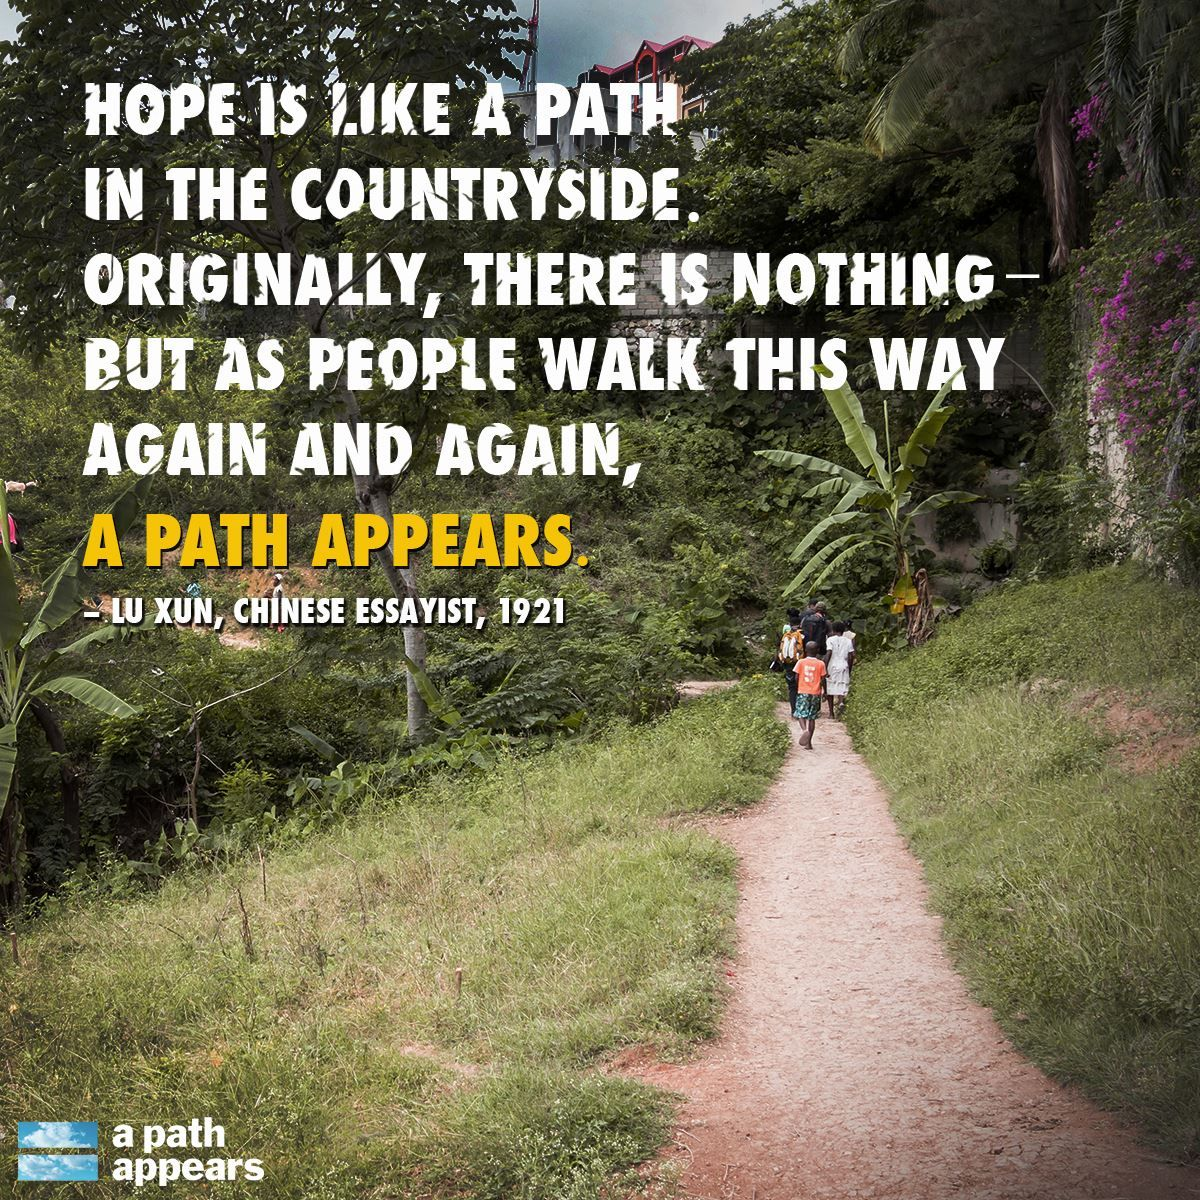 Nicholas Kristof And Sheryl Wudunn's New Book, A Path Appears, Will Be  Released Sept